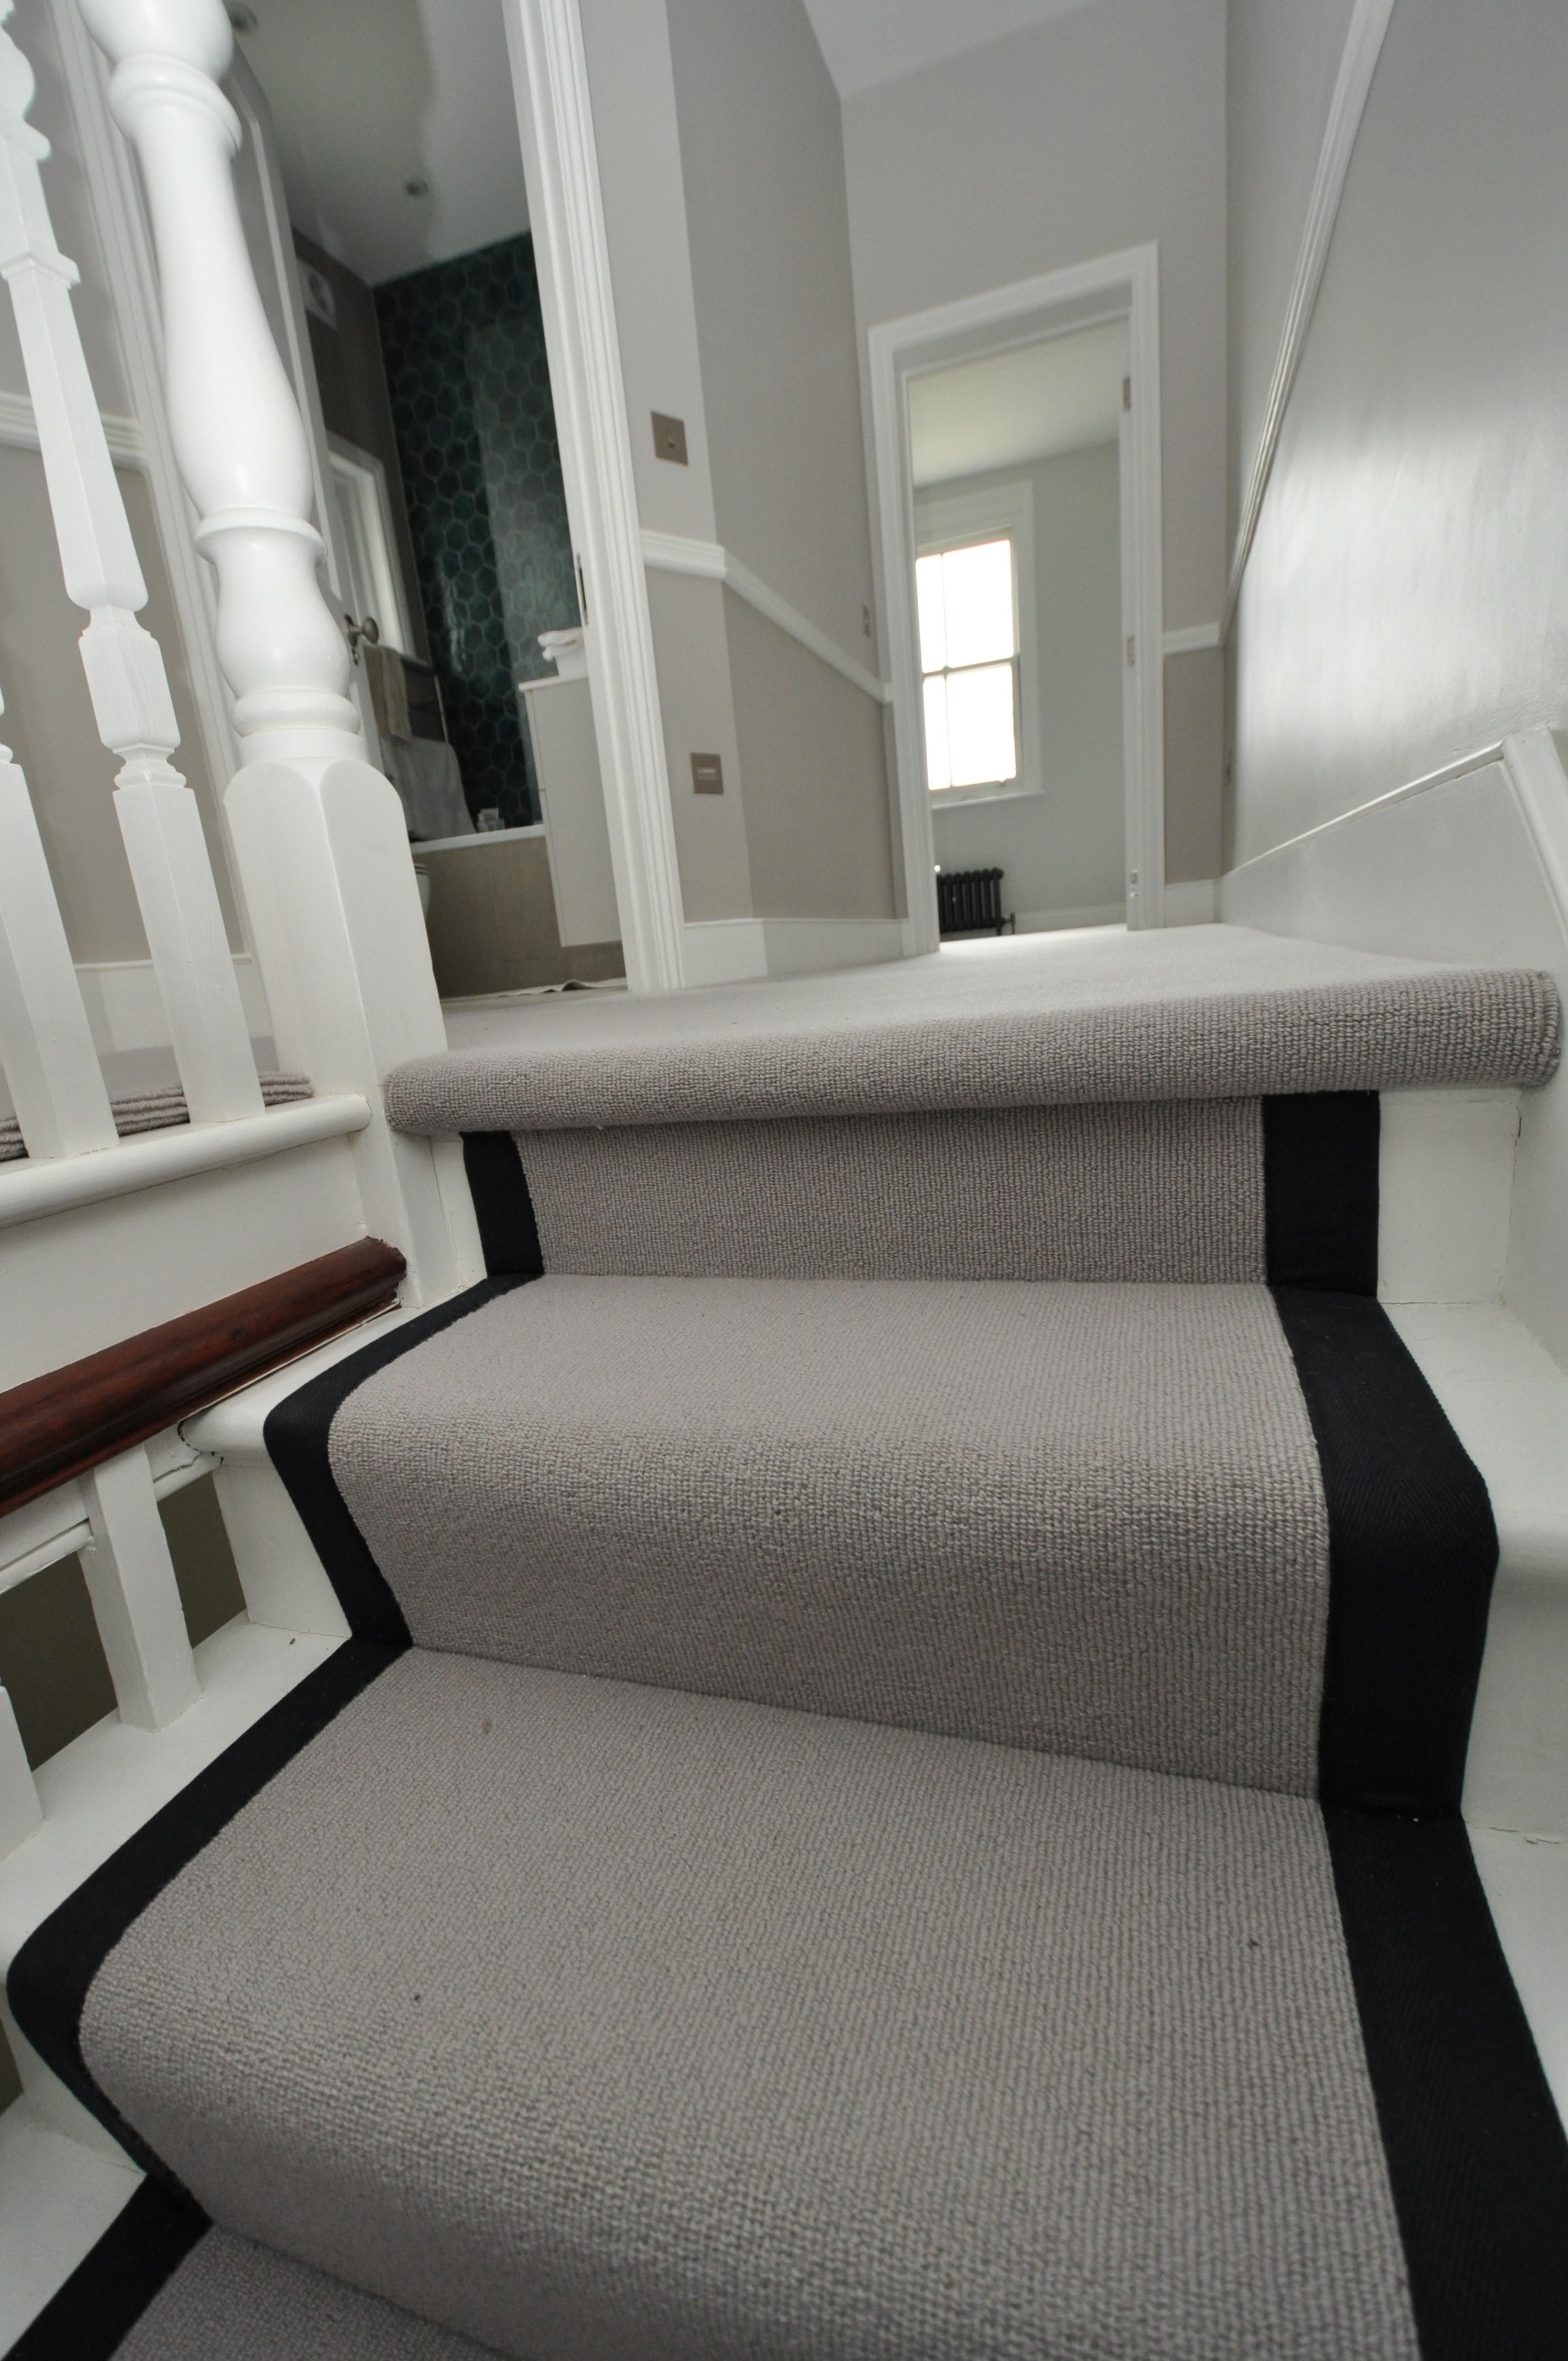 4 041 Wool Stair Runners Bowloom Wool Carpet Fitted Stair Runners With Binding Tape In 2020 Stairs Hallway Decorating Staircase Lighting Ideas